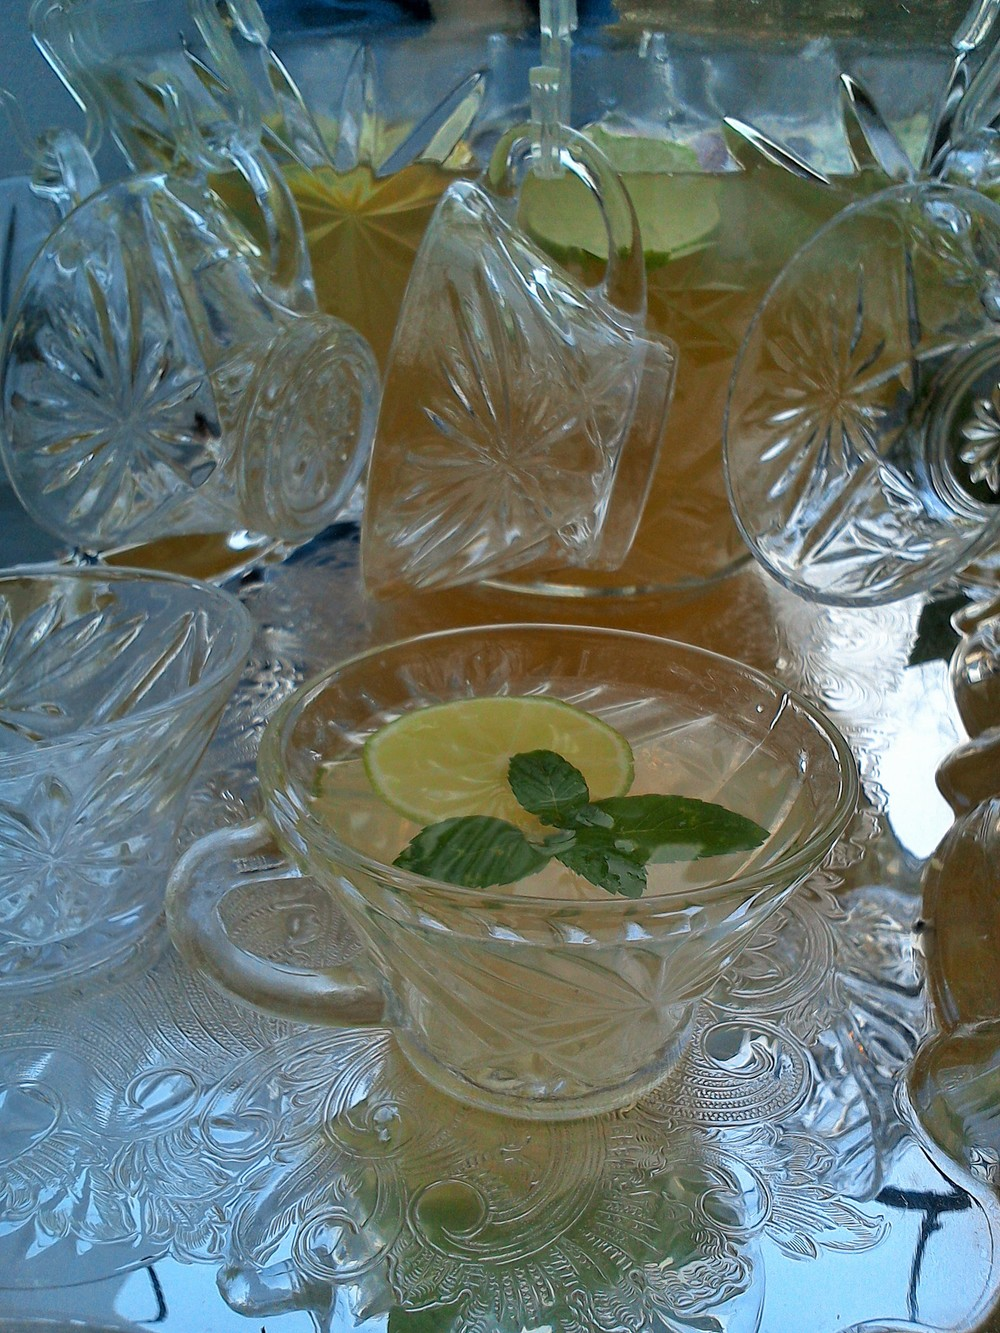 lemon lime champagne punch bowl recipe from MartieDuncan.com